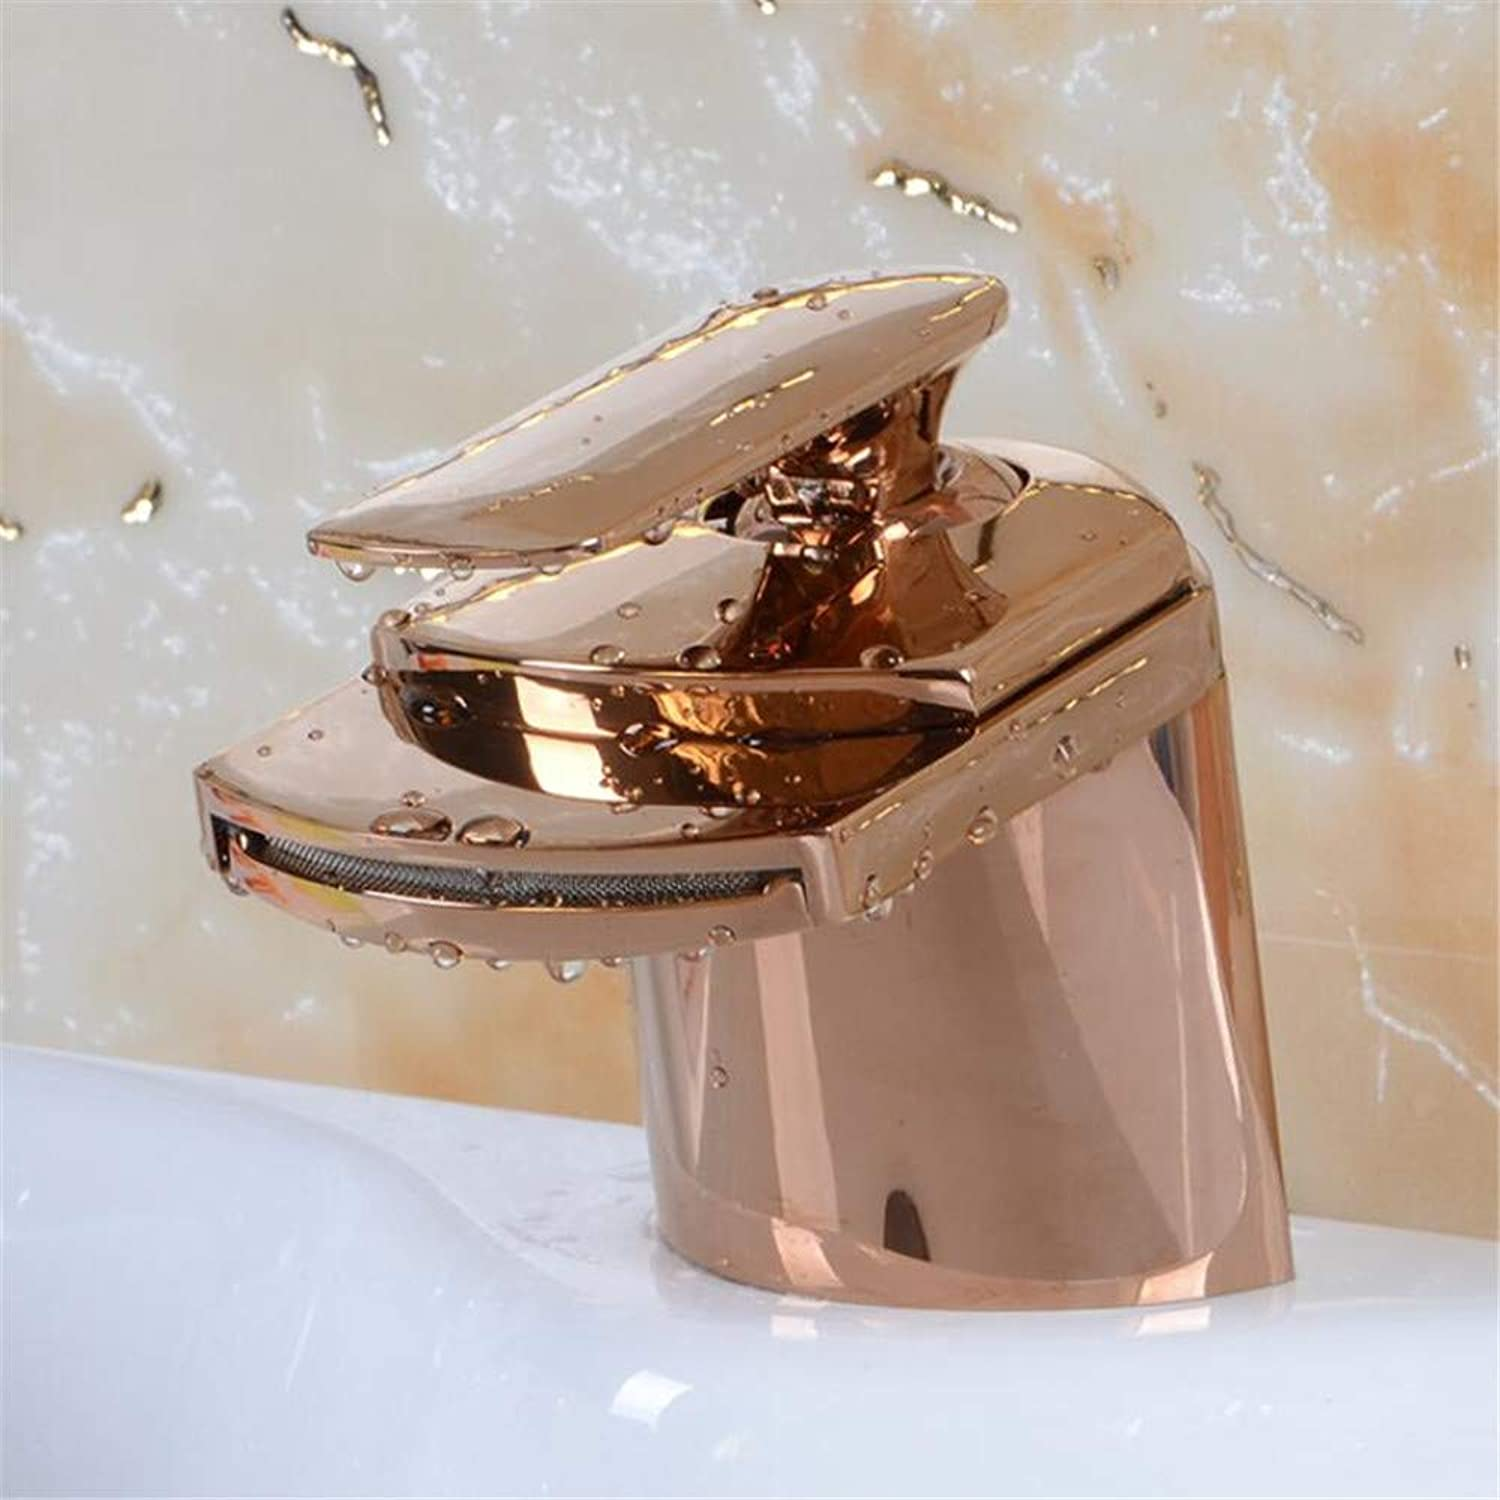 Copper Faucet Bathroom Antique Wide Mouth Faucet Brushed Bathroom Supplies Counter Basin pink gold Faucet